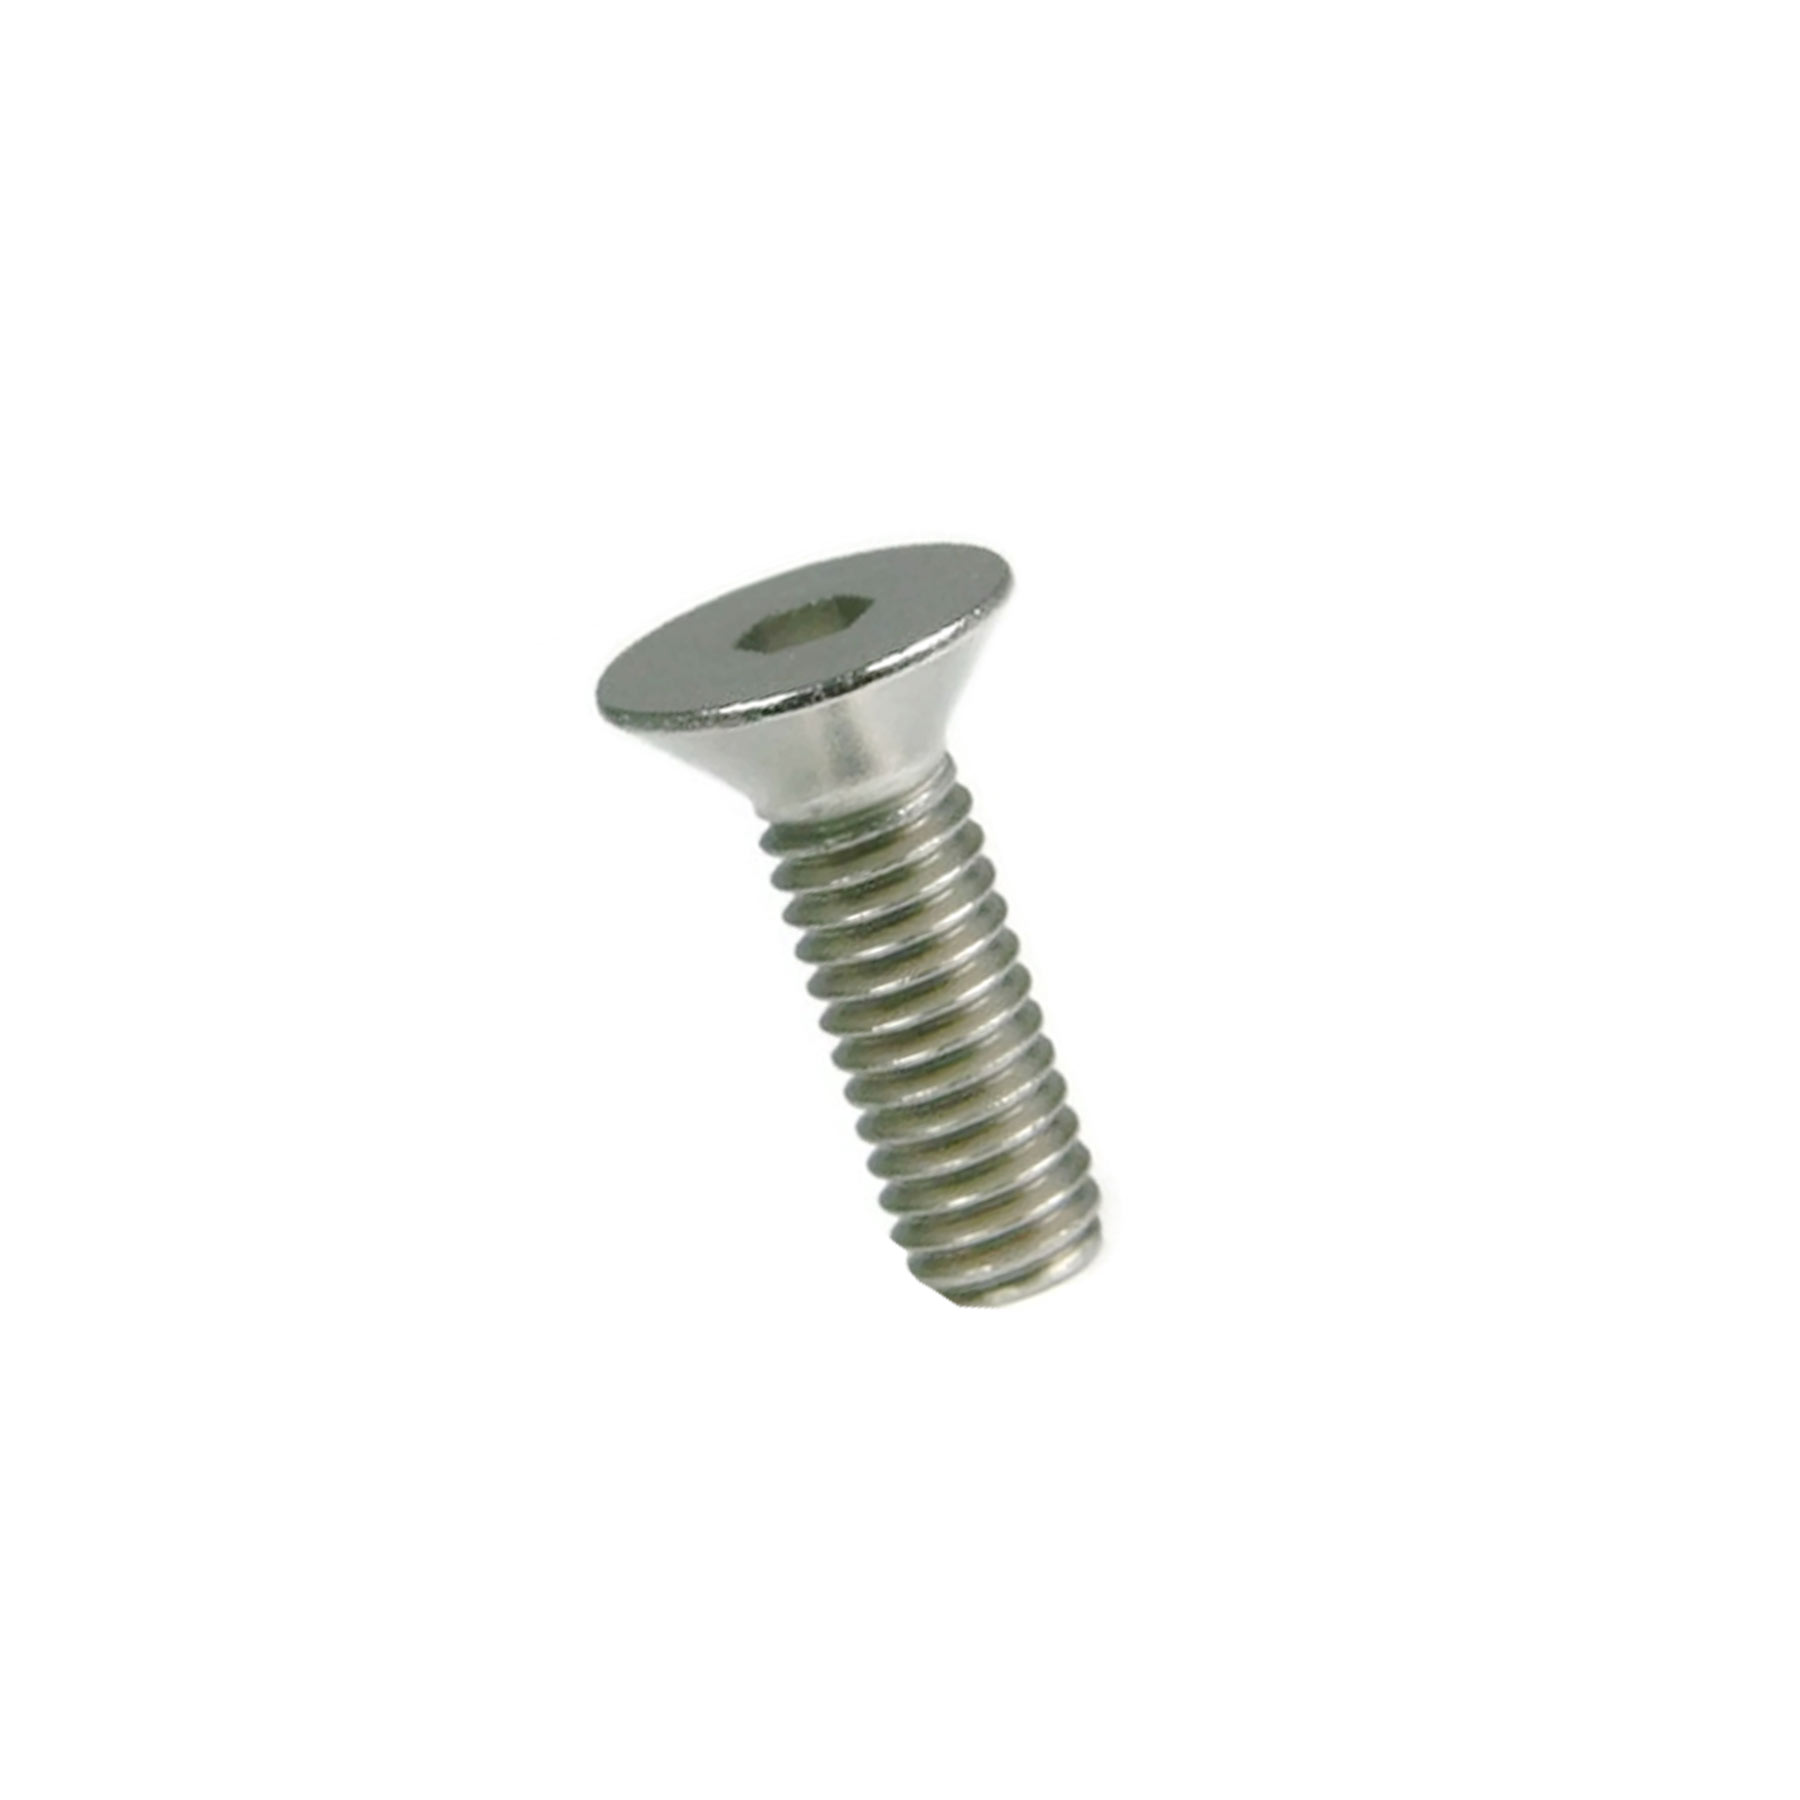 Stainless Steel Screw 1/2